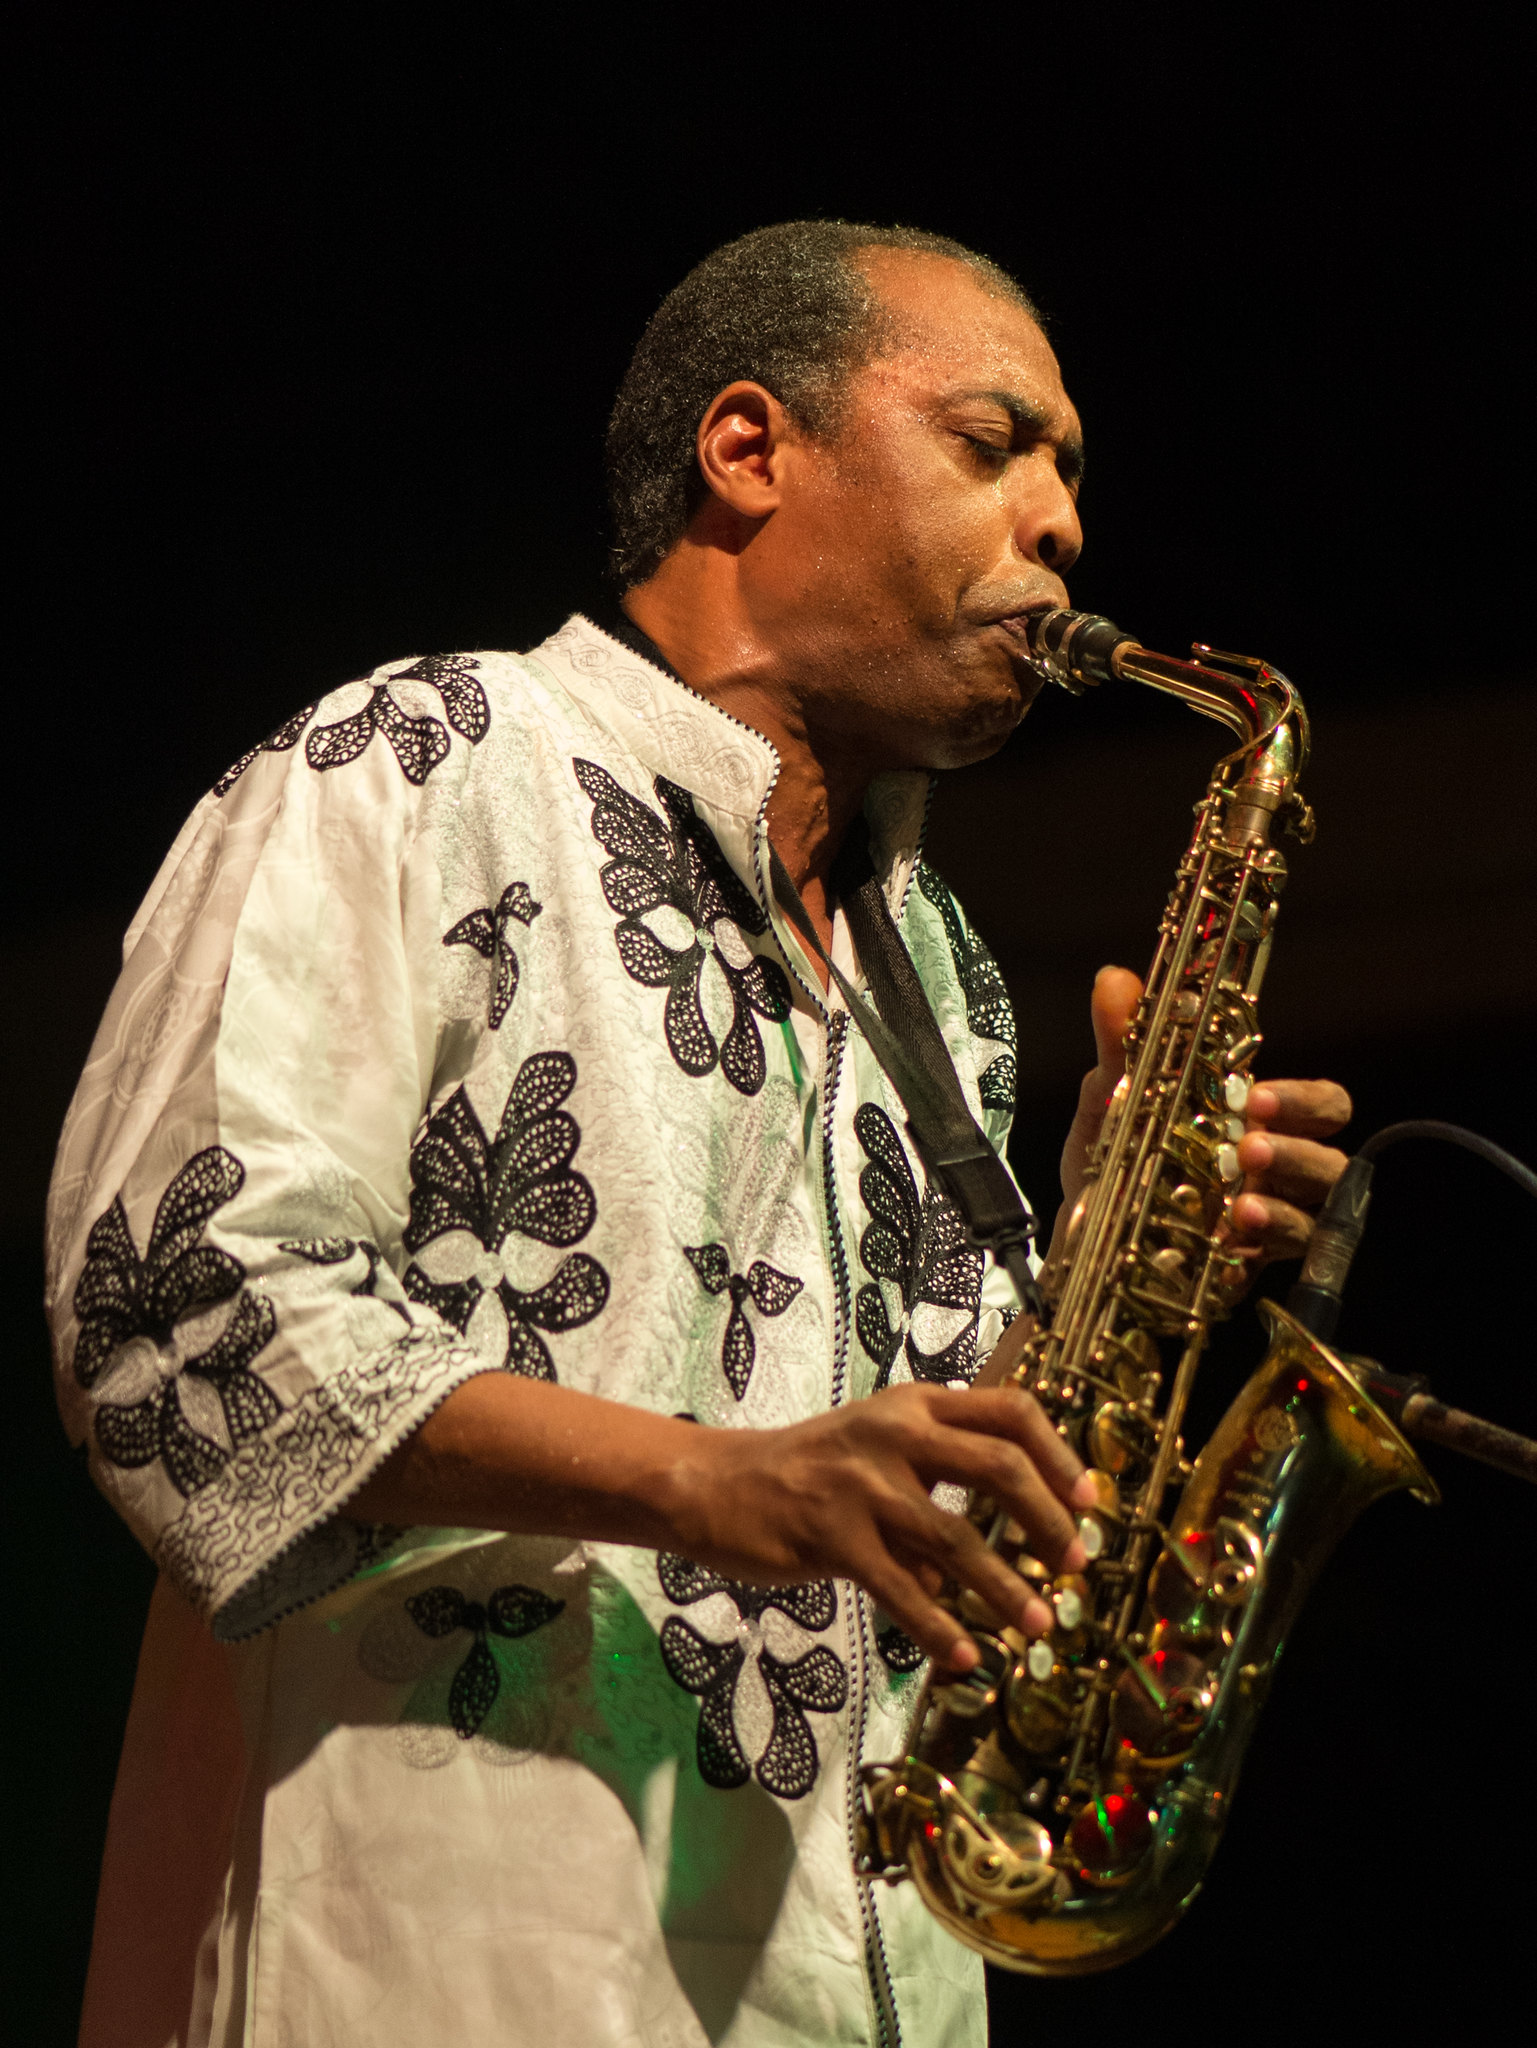 Femi Kuti Plays the Sax